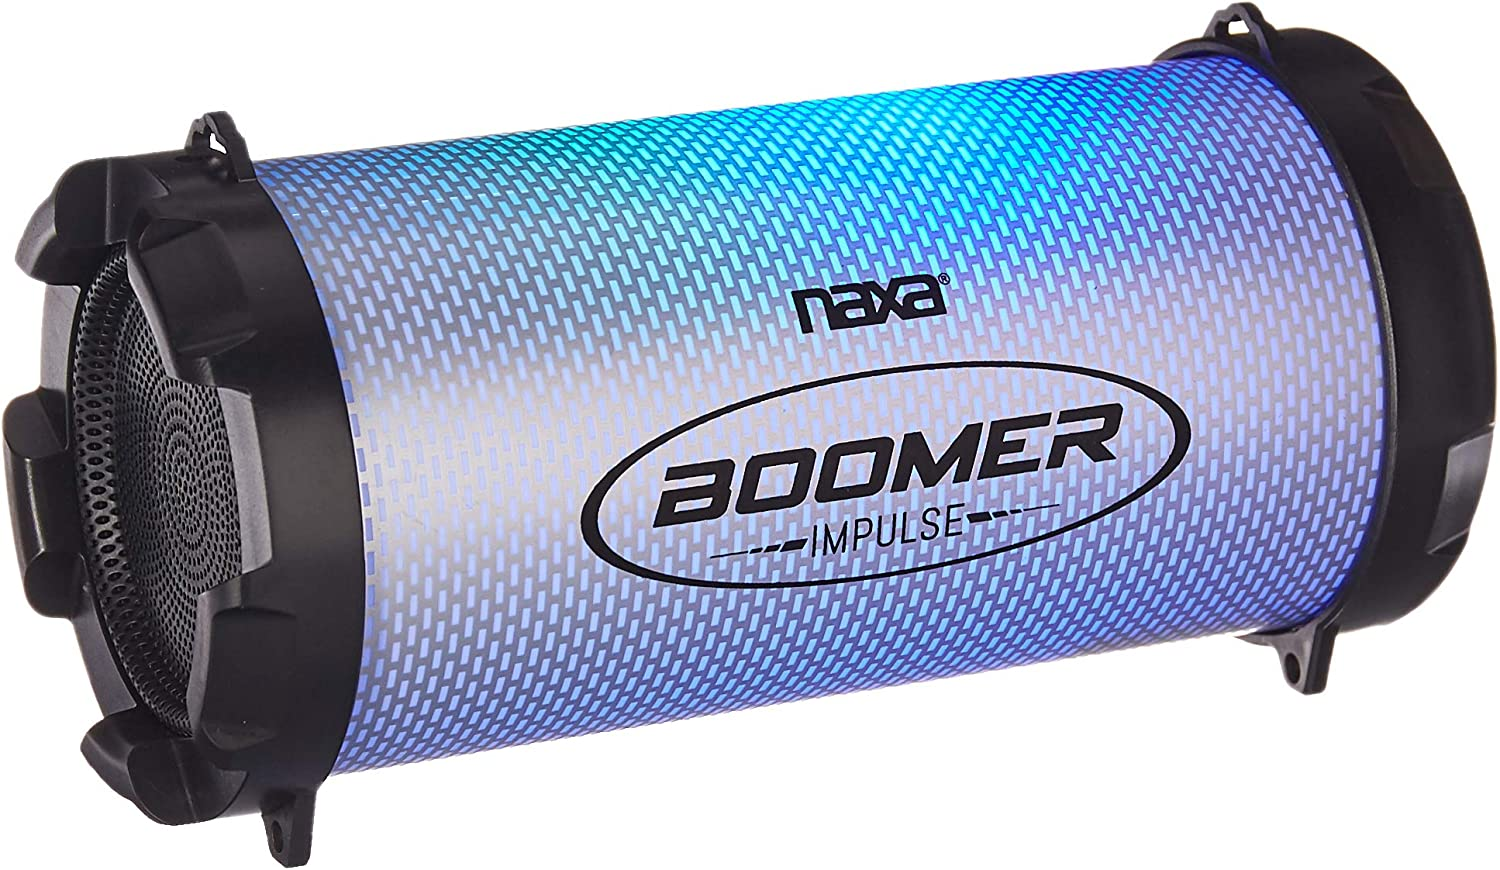 Connect Smartphones or Laptops NAXA Electronics NAS-3084 Boomer Impulse Wireless Bluetooth Boombox with LED Lights Tablets